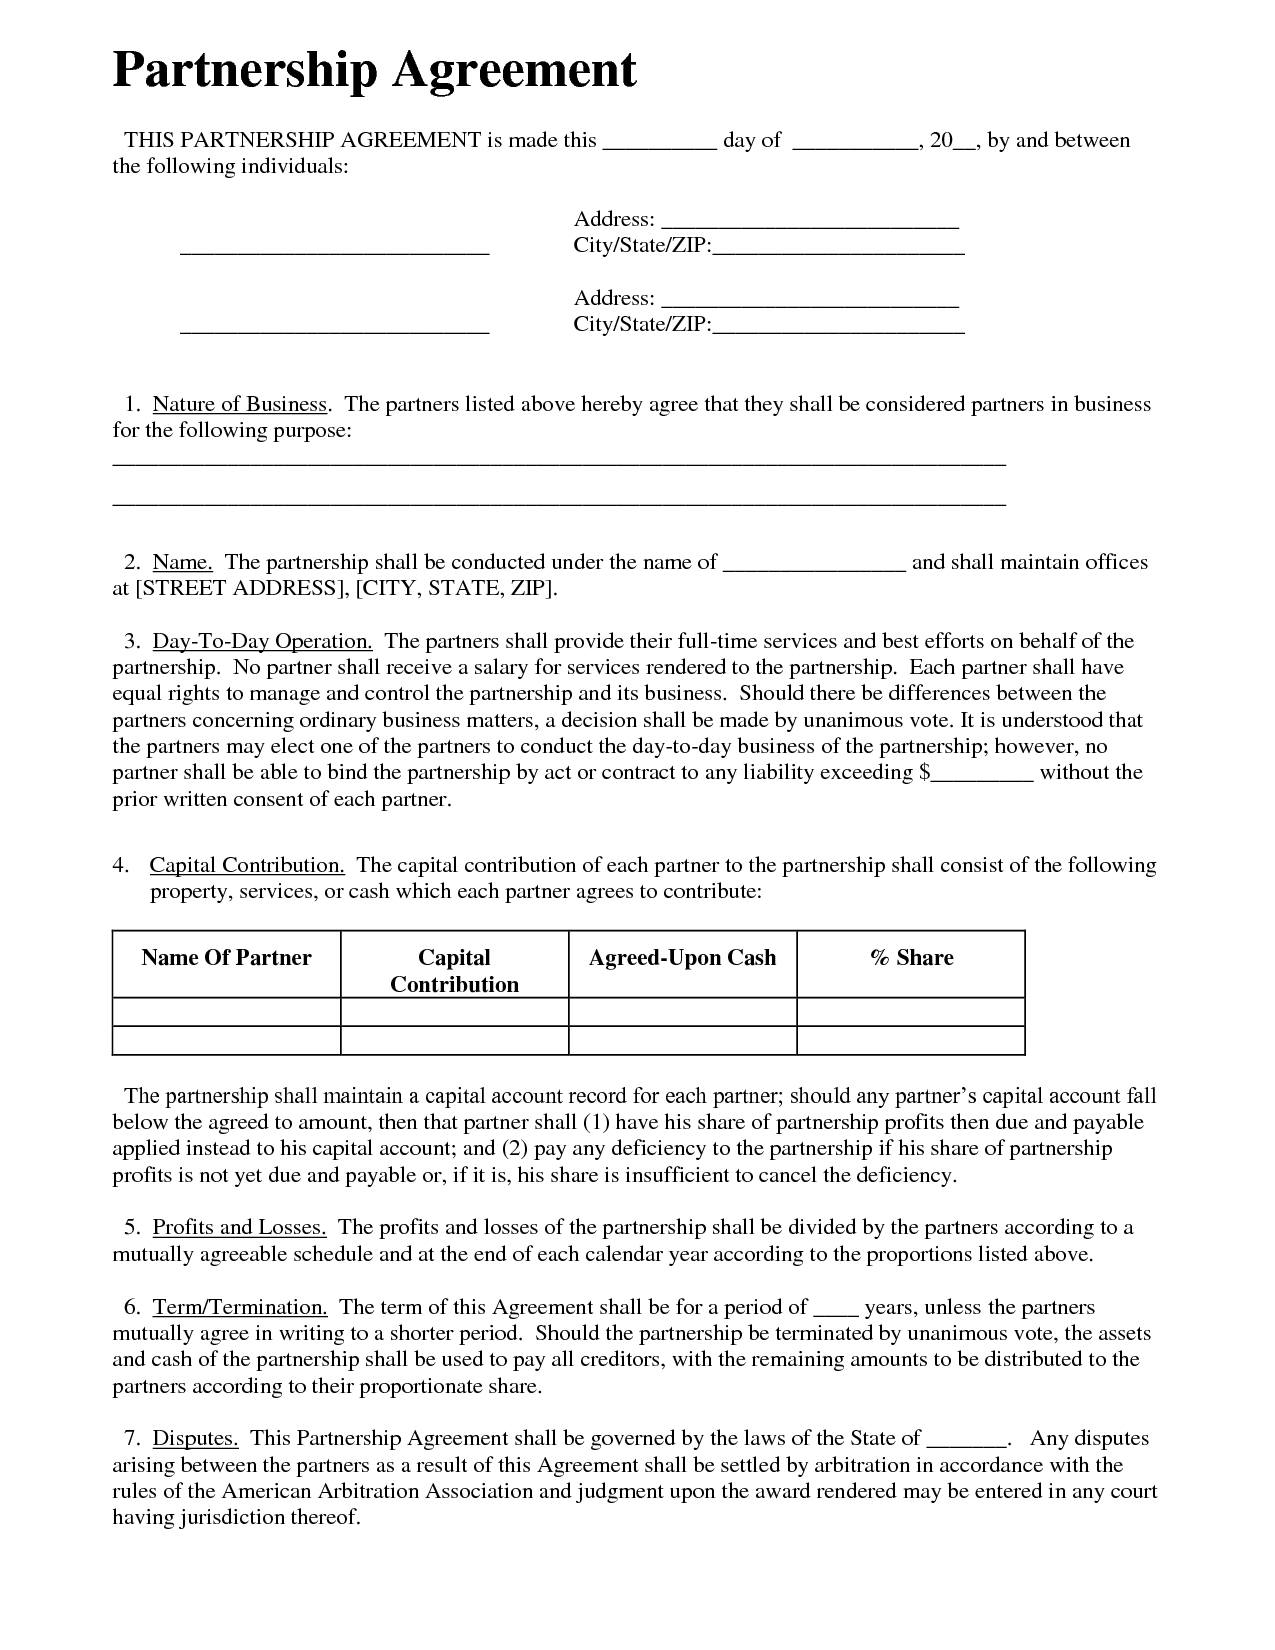 Pinberty Zulfianna On Share  Contract Agreement Small Business Intended For Business Partnership Agreement Template Pdf